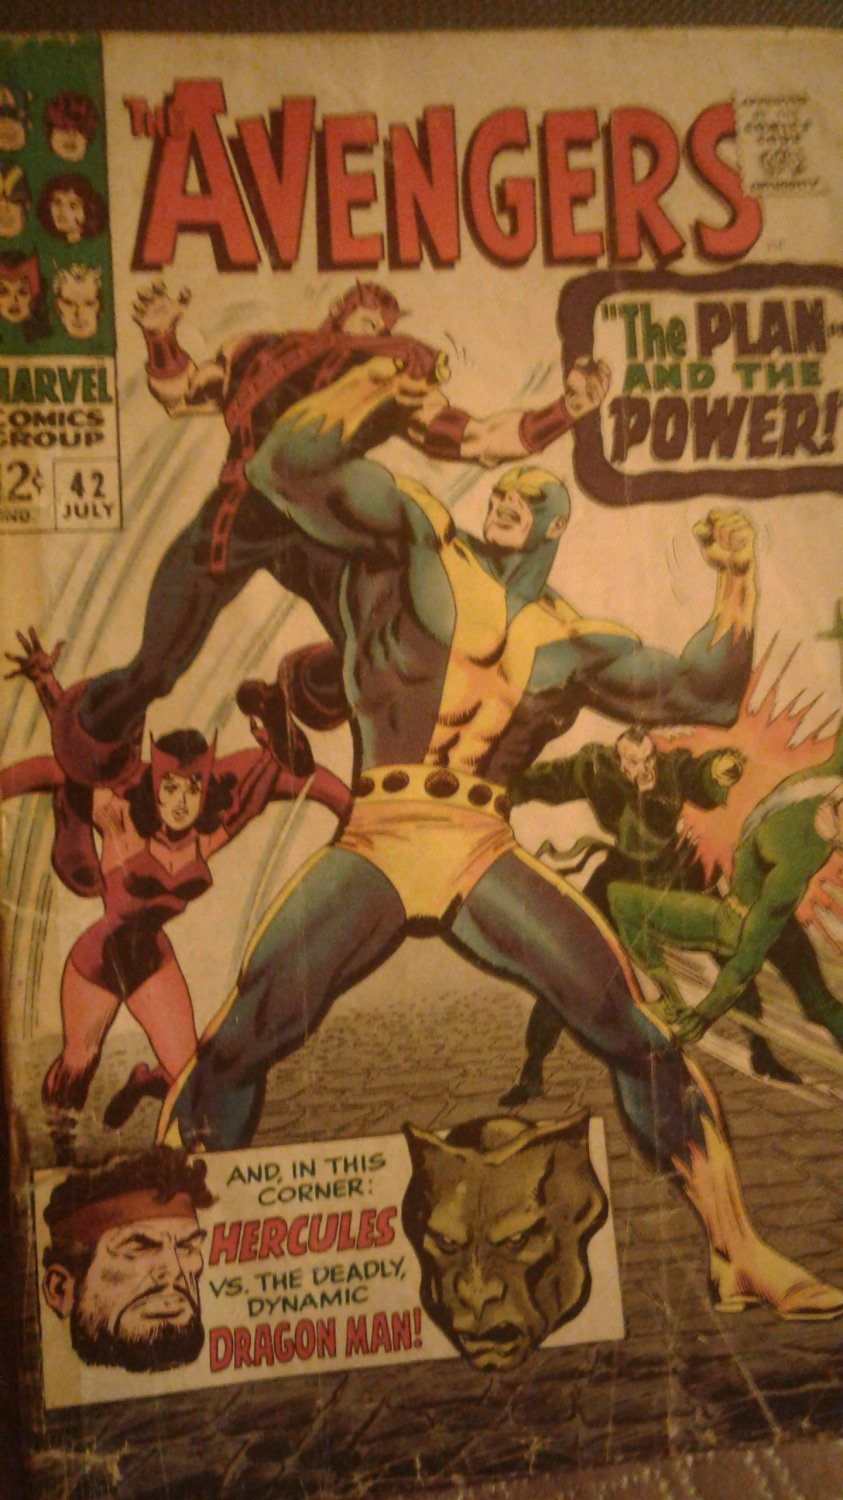 The Avengers - # 42 July 1967 Comic Book